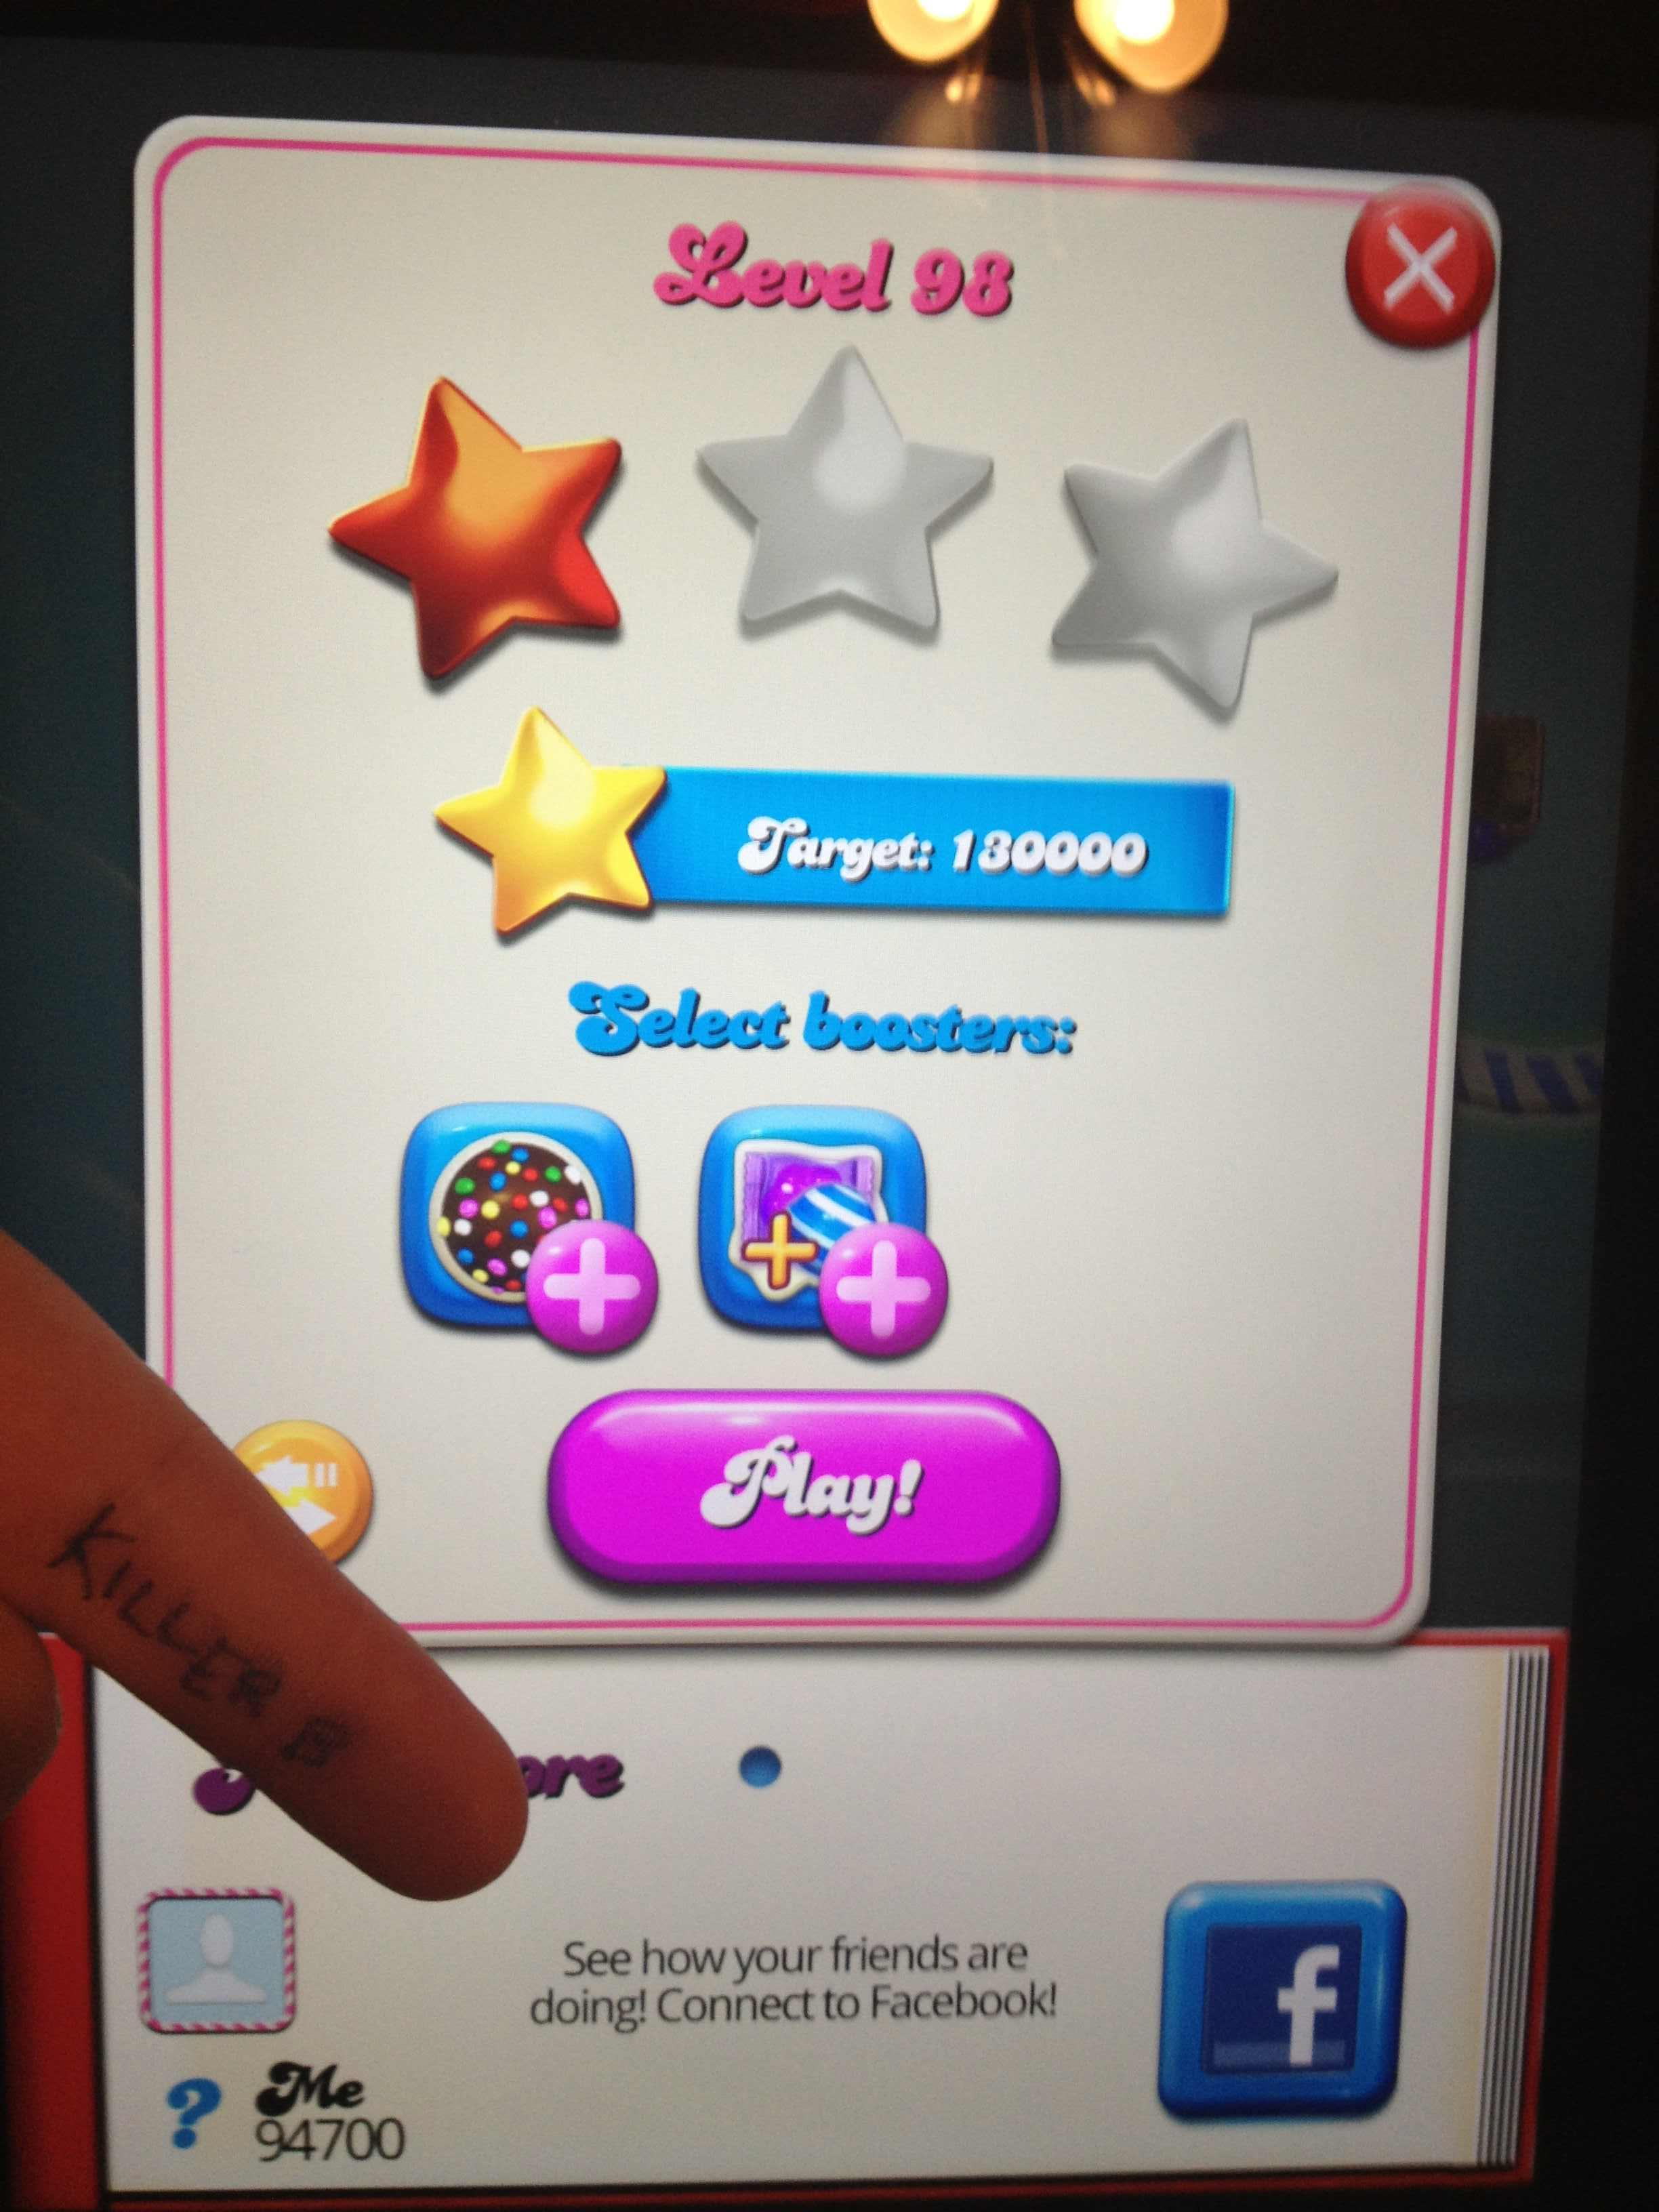 Candy Crush Saga: Level 098 94,700 points